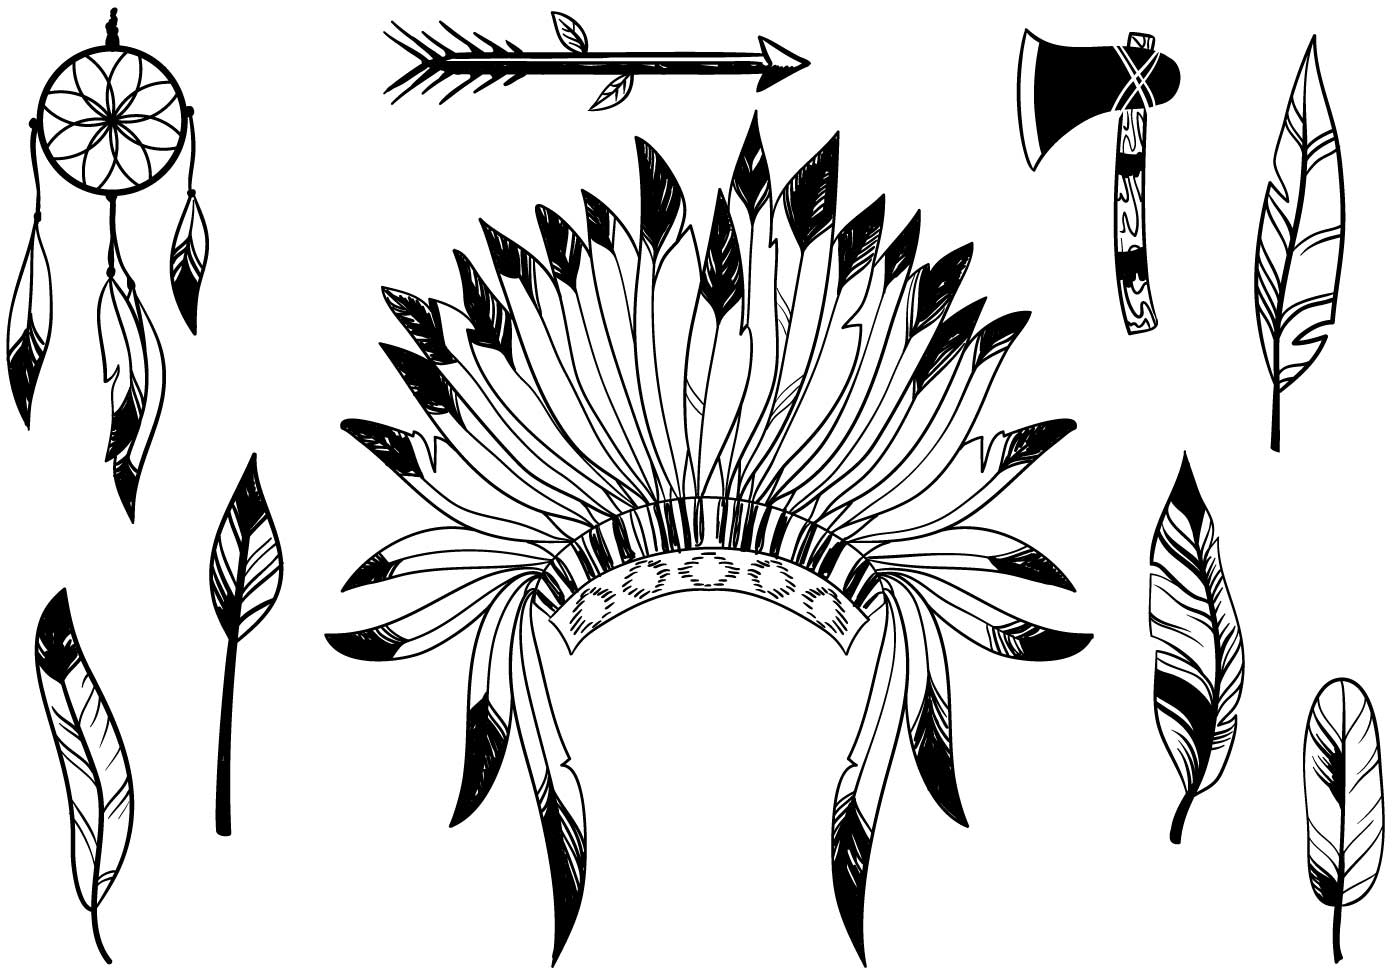 indian feathers template - HD 1400×980